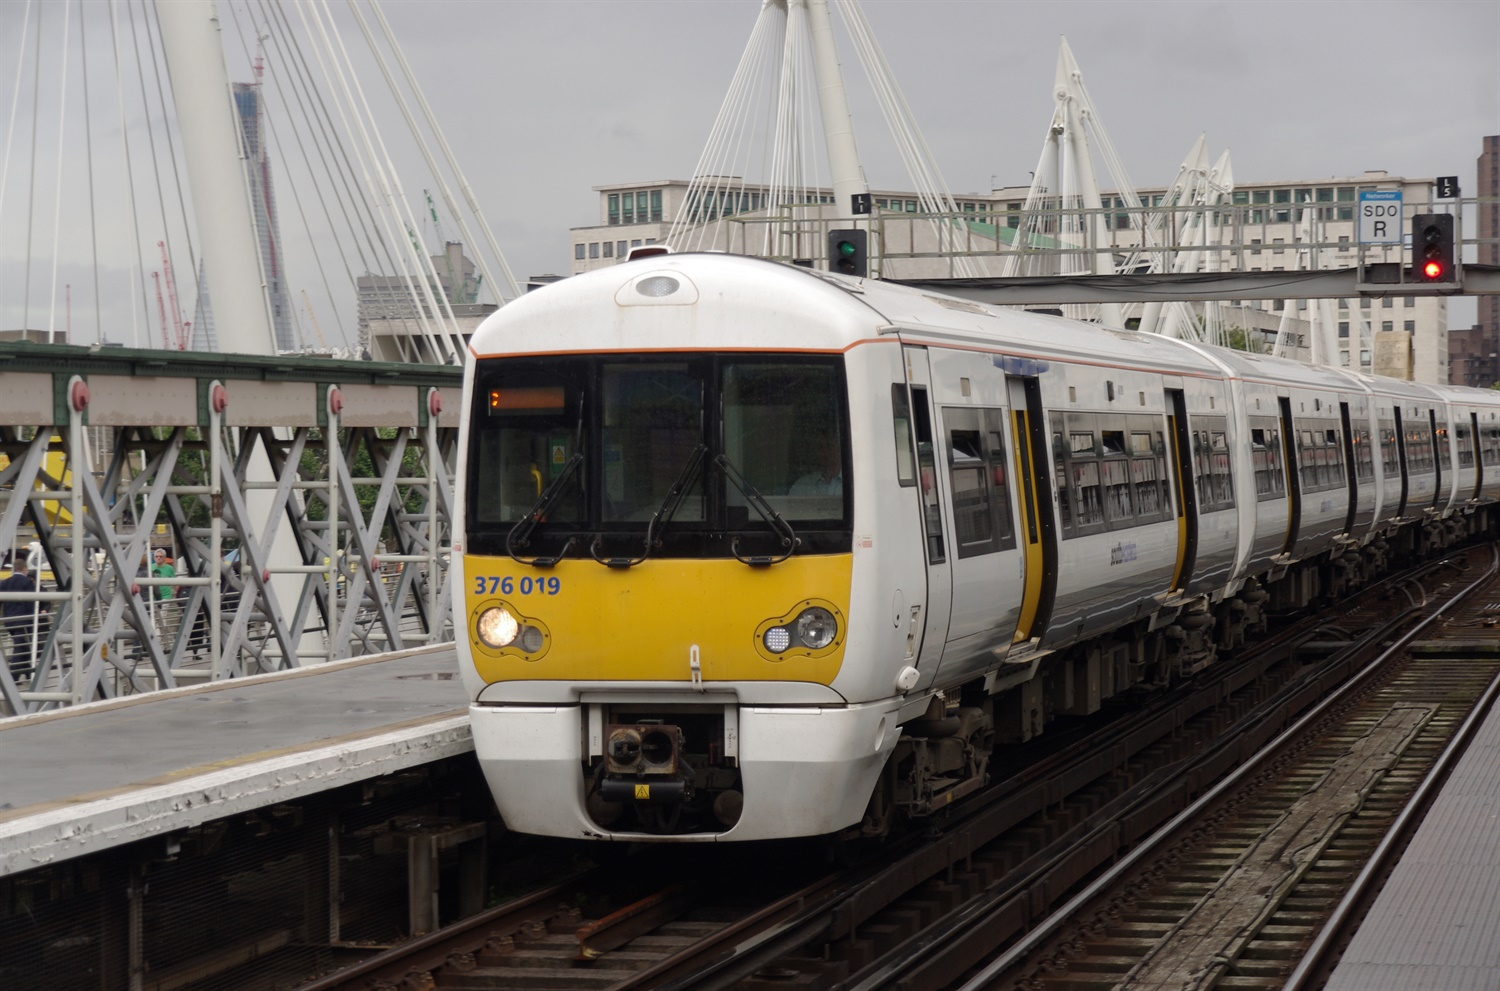 TfL targeting Southeastern metro services for takeover